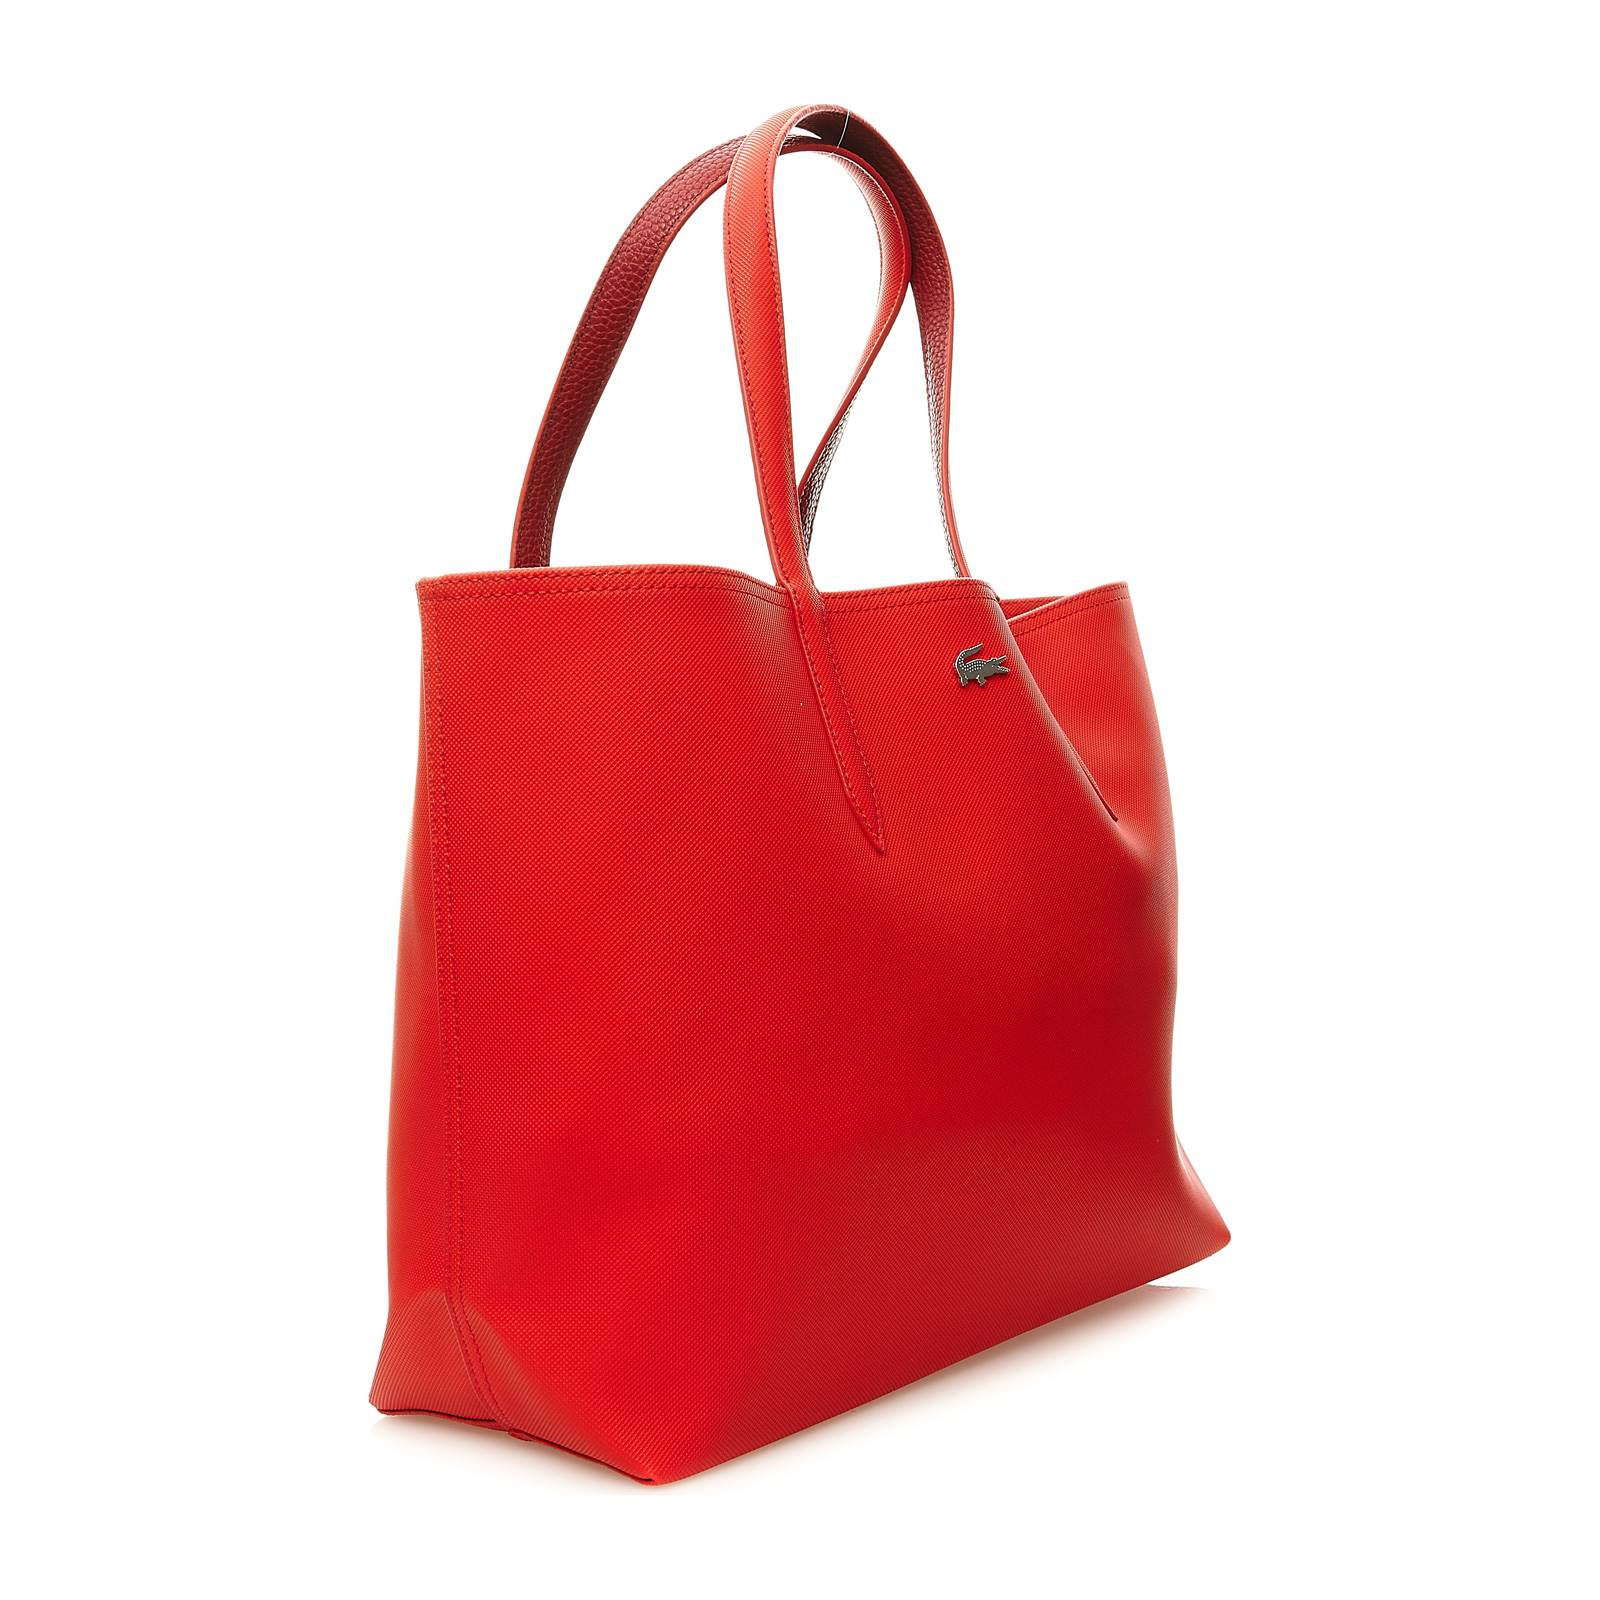 lacoste sac shopping accompagn de sa pochette assortie rouge brandalley. Black Bedroom Furniture Sets. Home Design Ideas